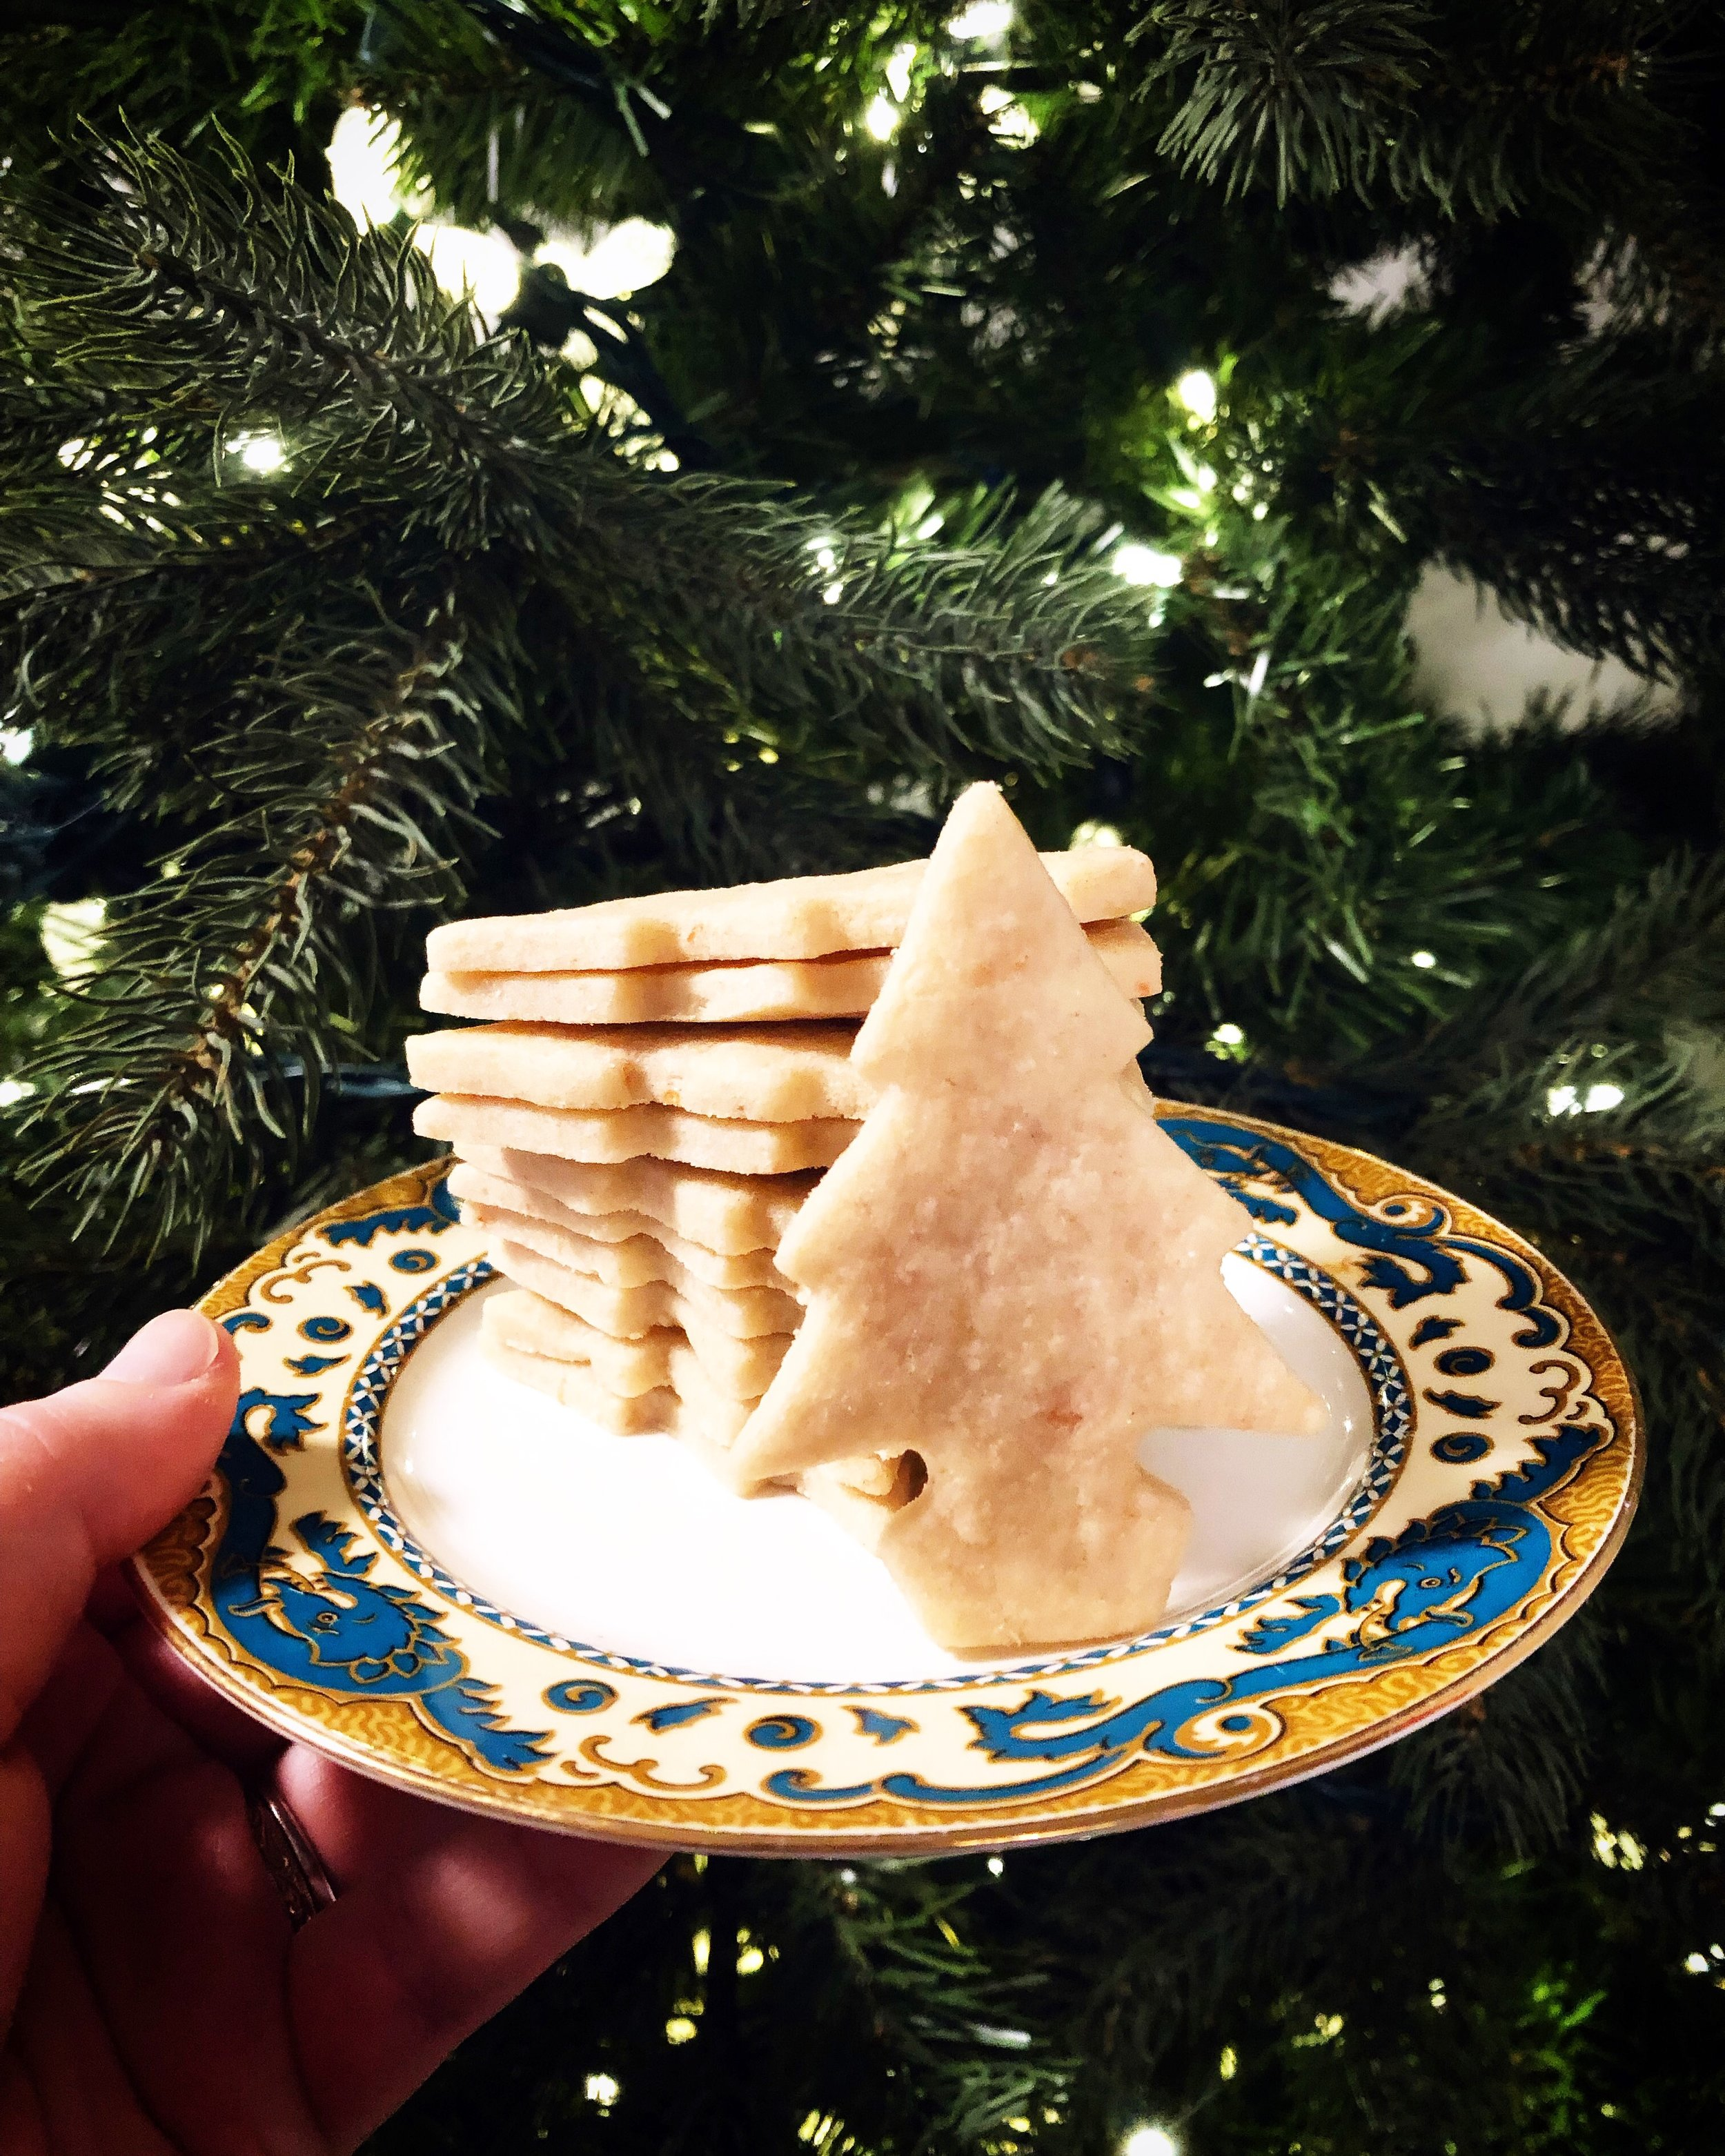 Douglas-fir might be a common choice for Christmas trees, but the one behind this plate of cookies is an artificial tree so don't use this as an example if you're trying to make a positive ID!